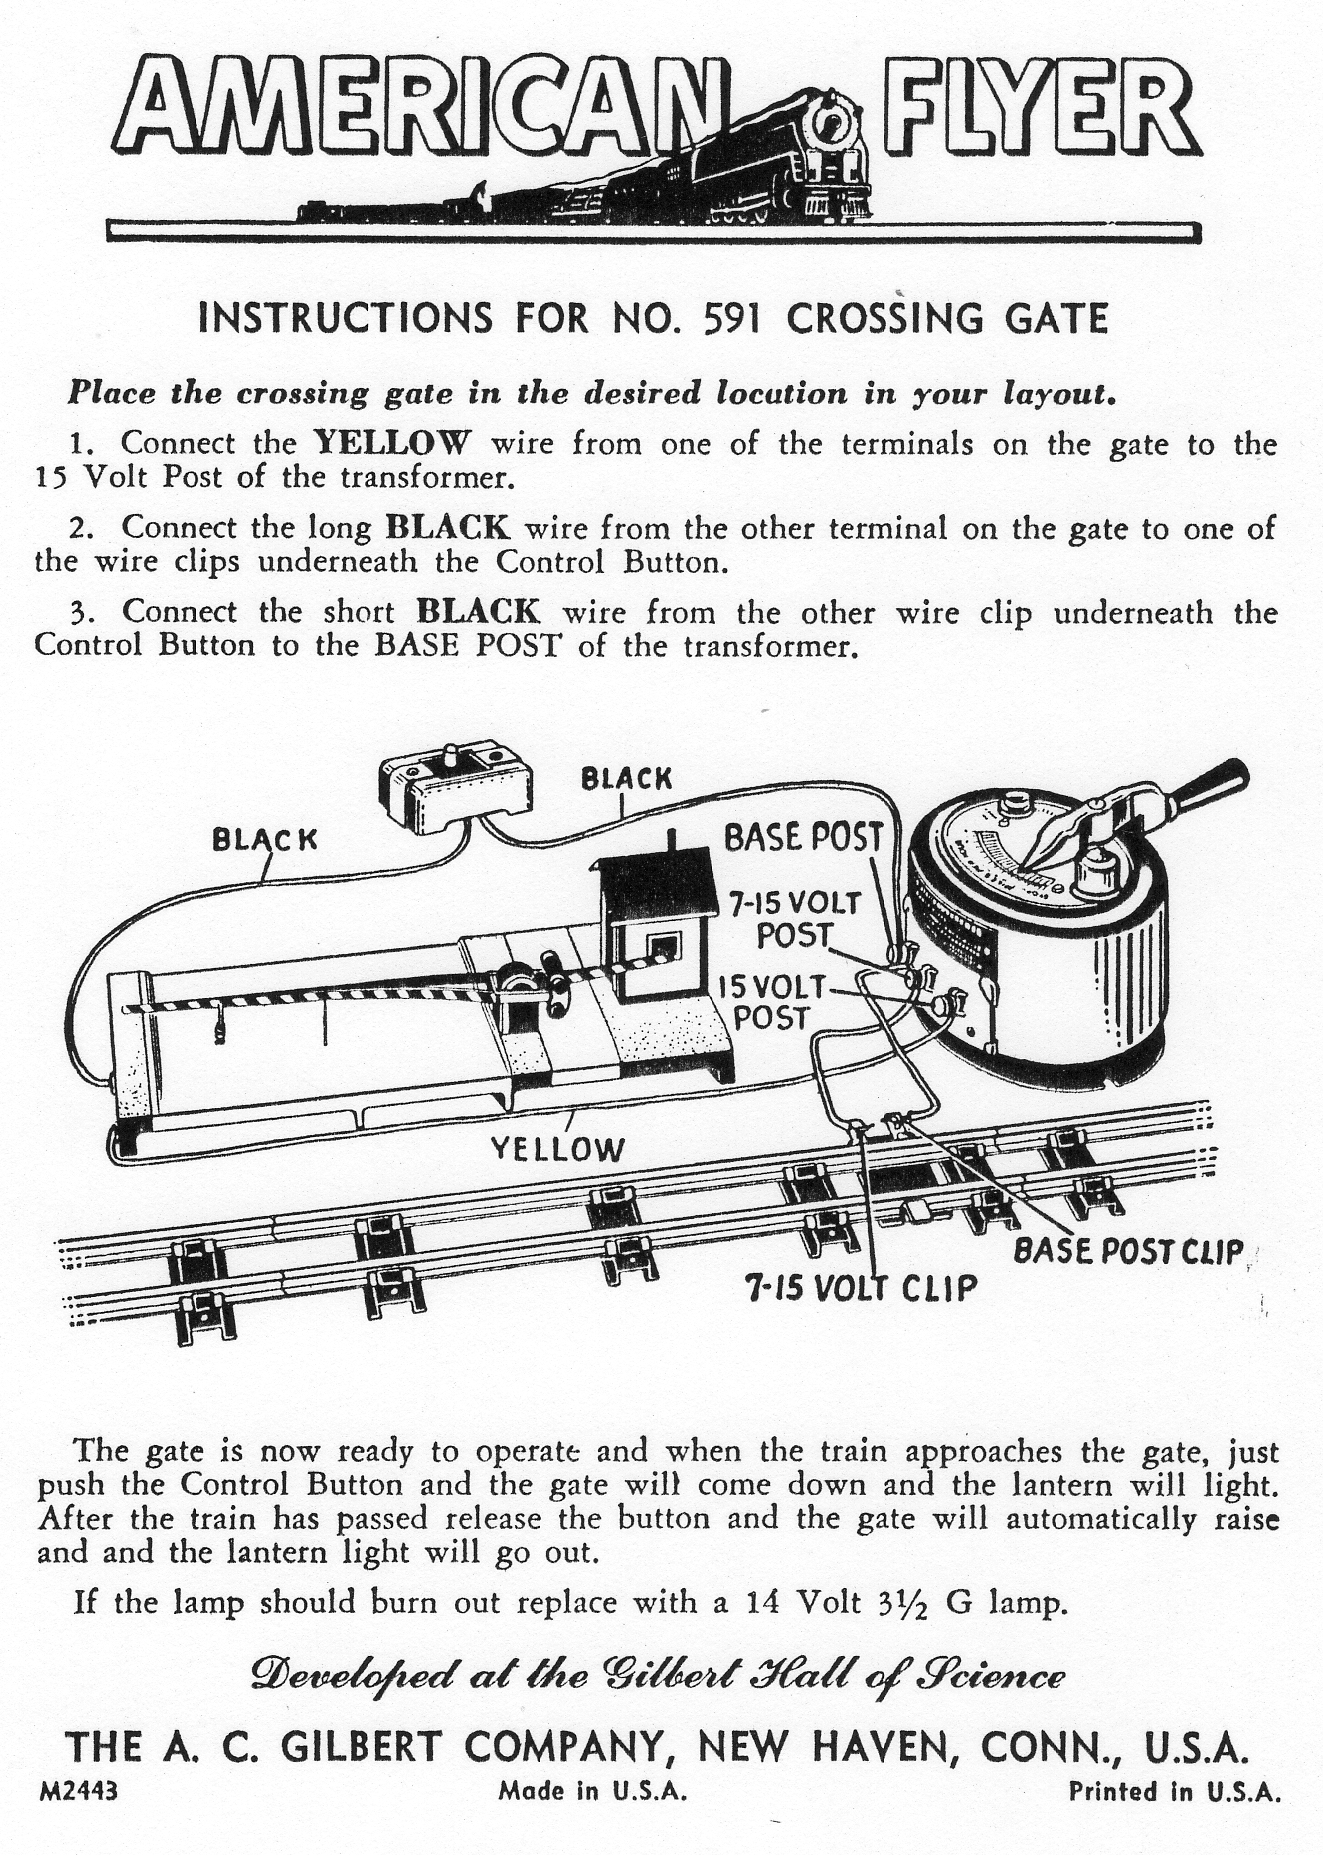 Instructions for Setting Up and Operating No. 591 Crossing Gate - Figure 3